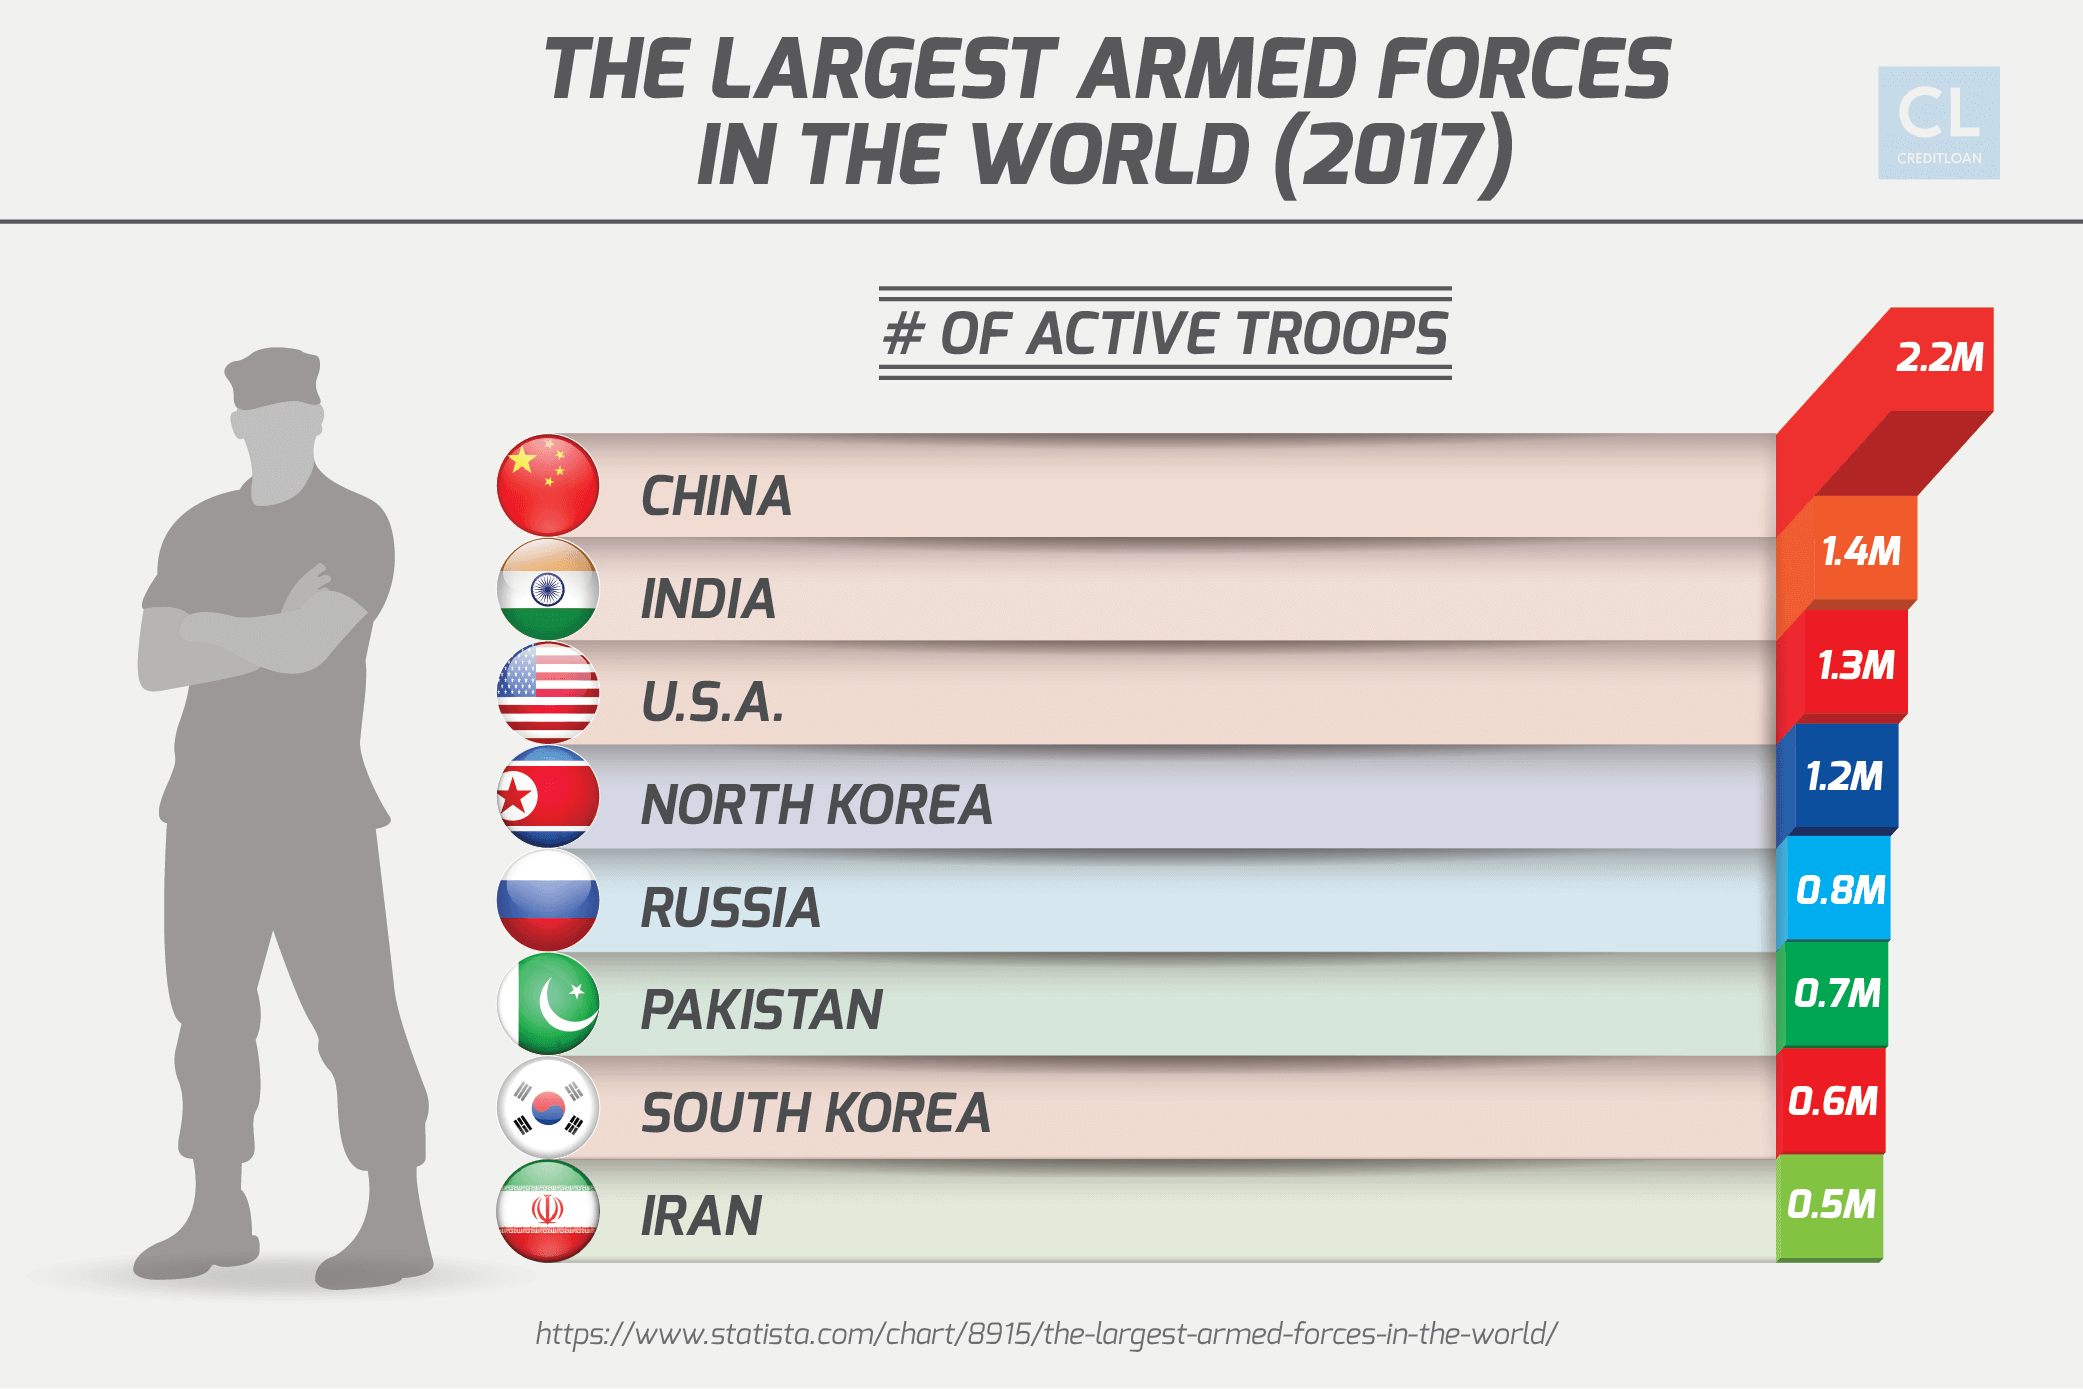 World Data on Largest Armed Forces 2017